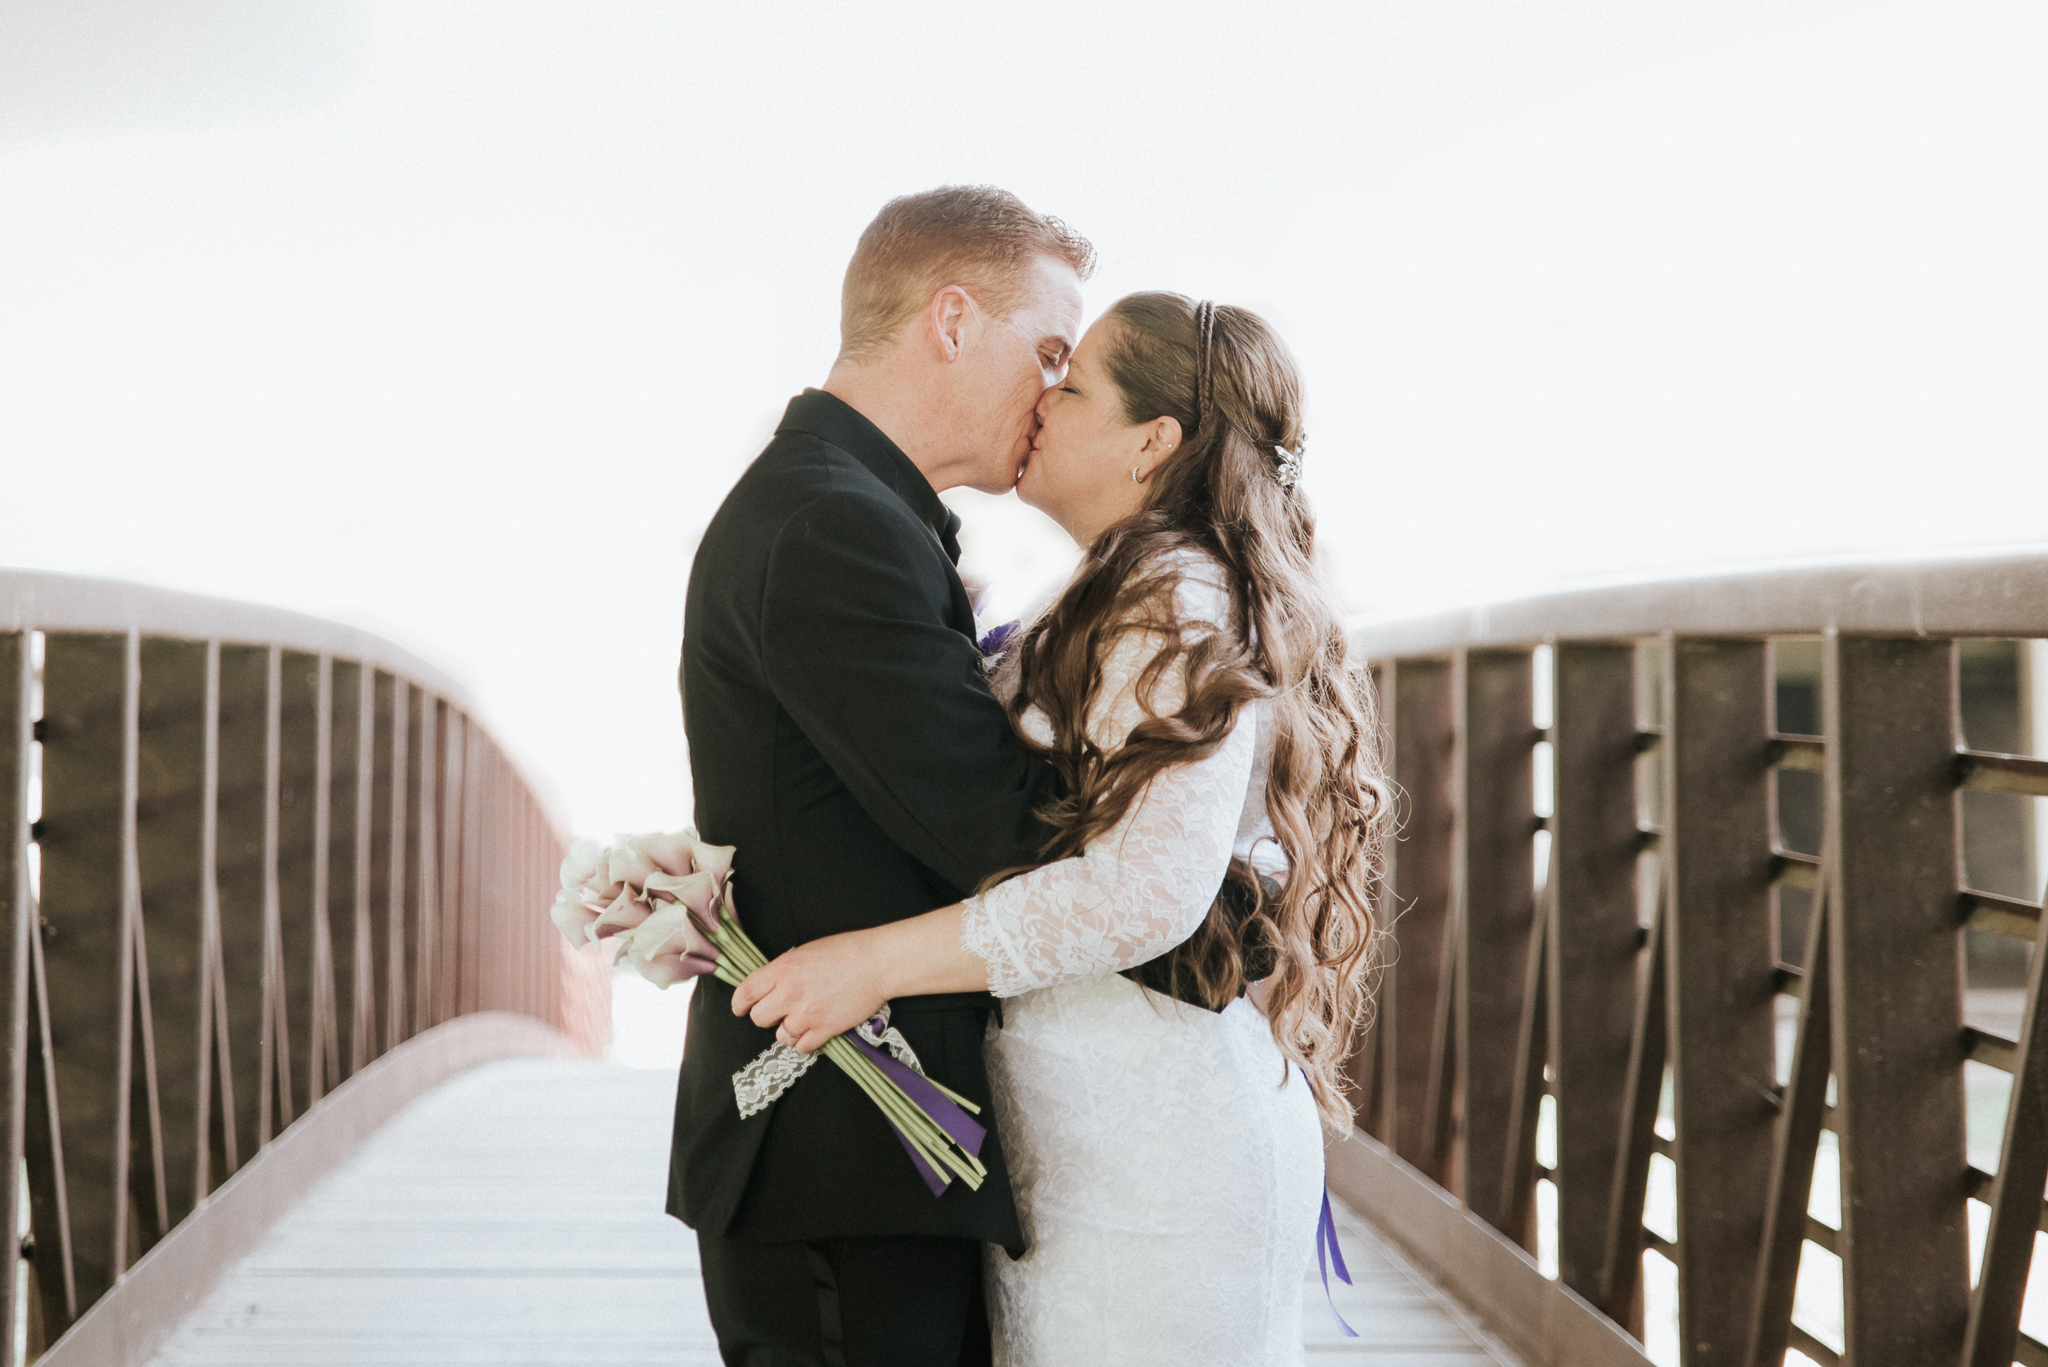 Wedding and Elopement Photographer_Round Rock Photographer_Emily Ingalls Photography_Austin Wedding and Elopement Photographer_Pflugerville Wedding Photographer_Georgetown Wedding Photographer-3.jpg